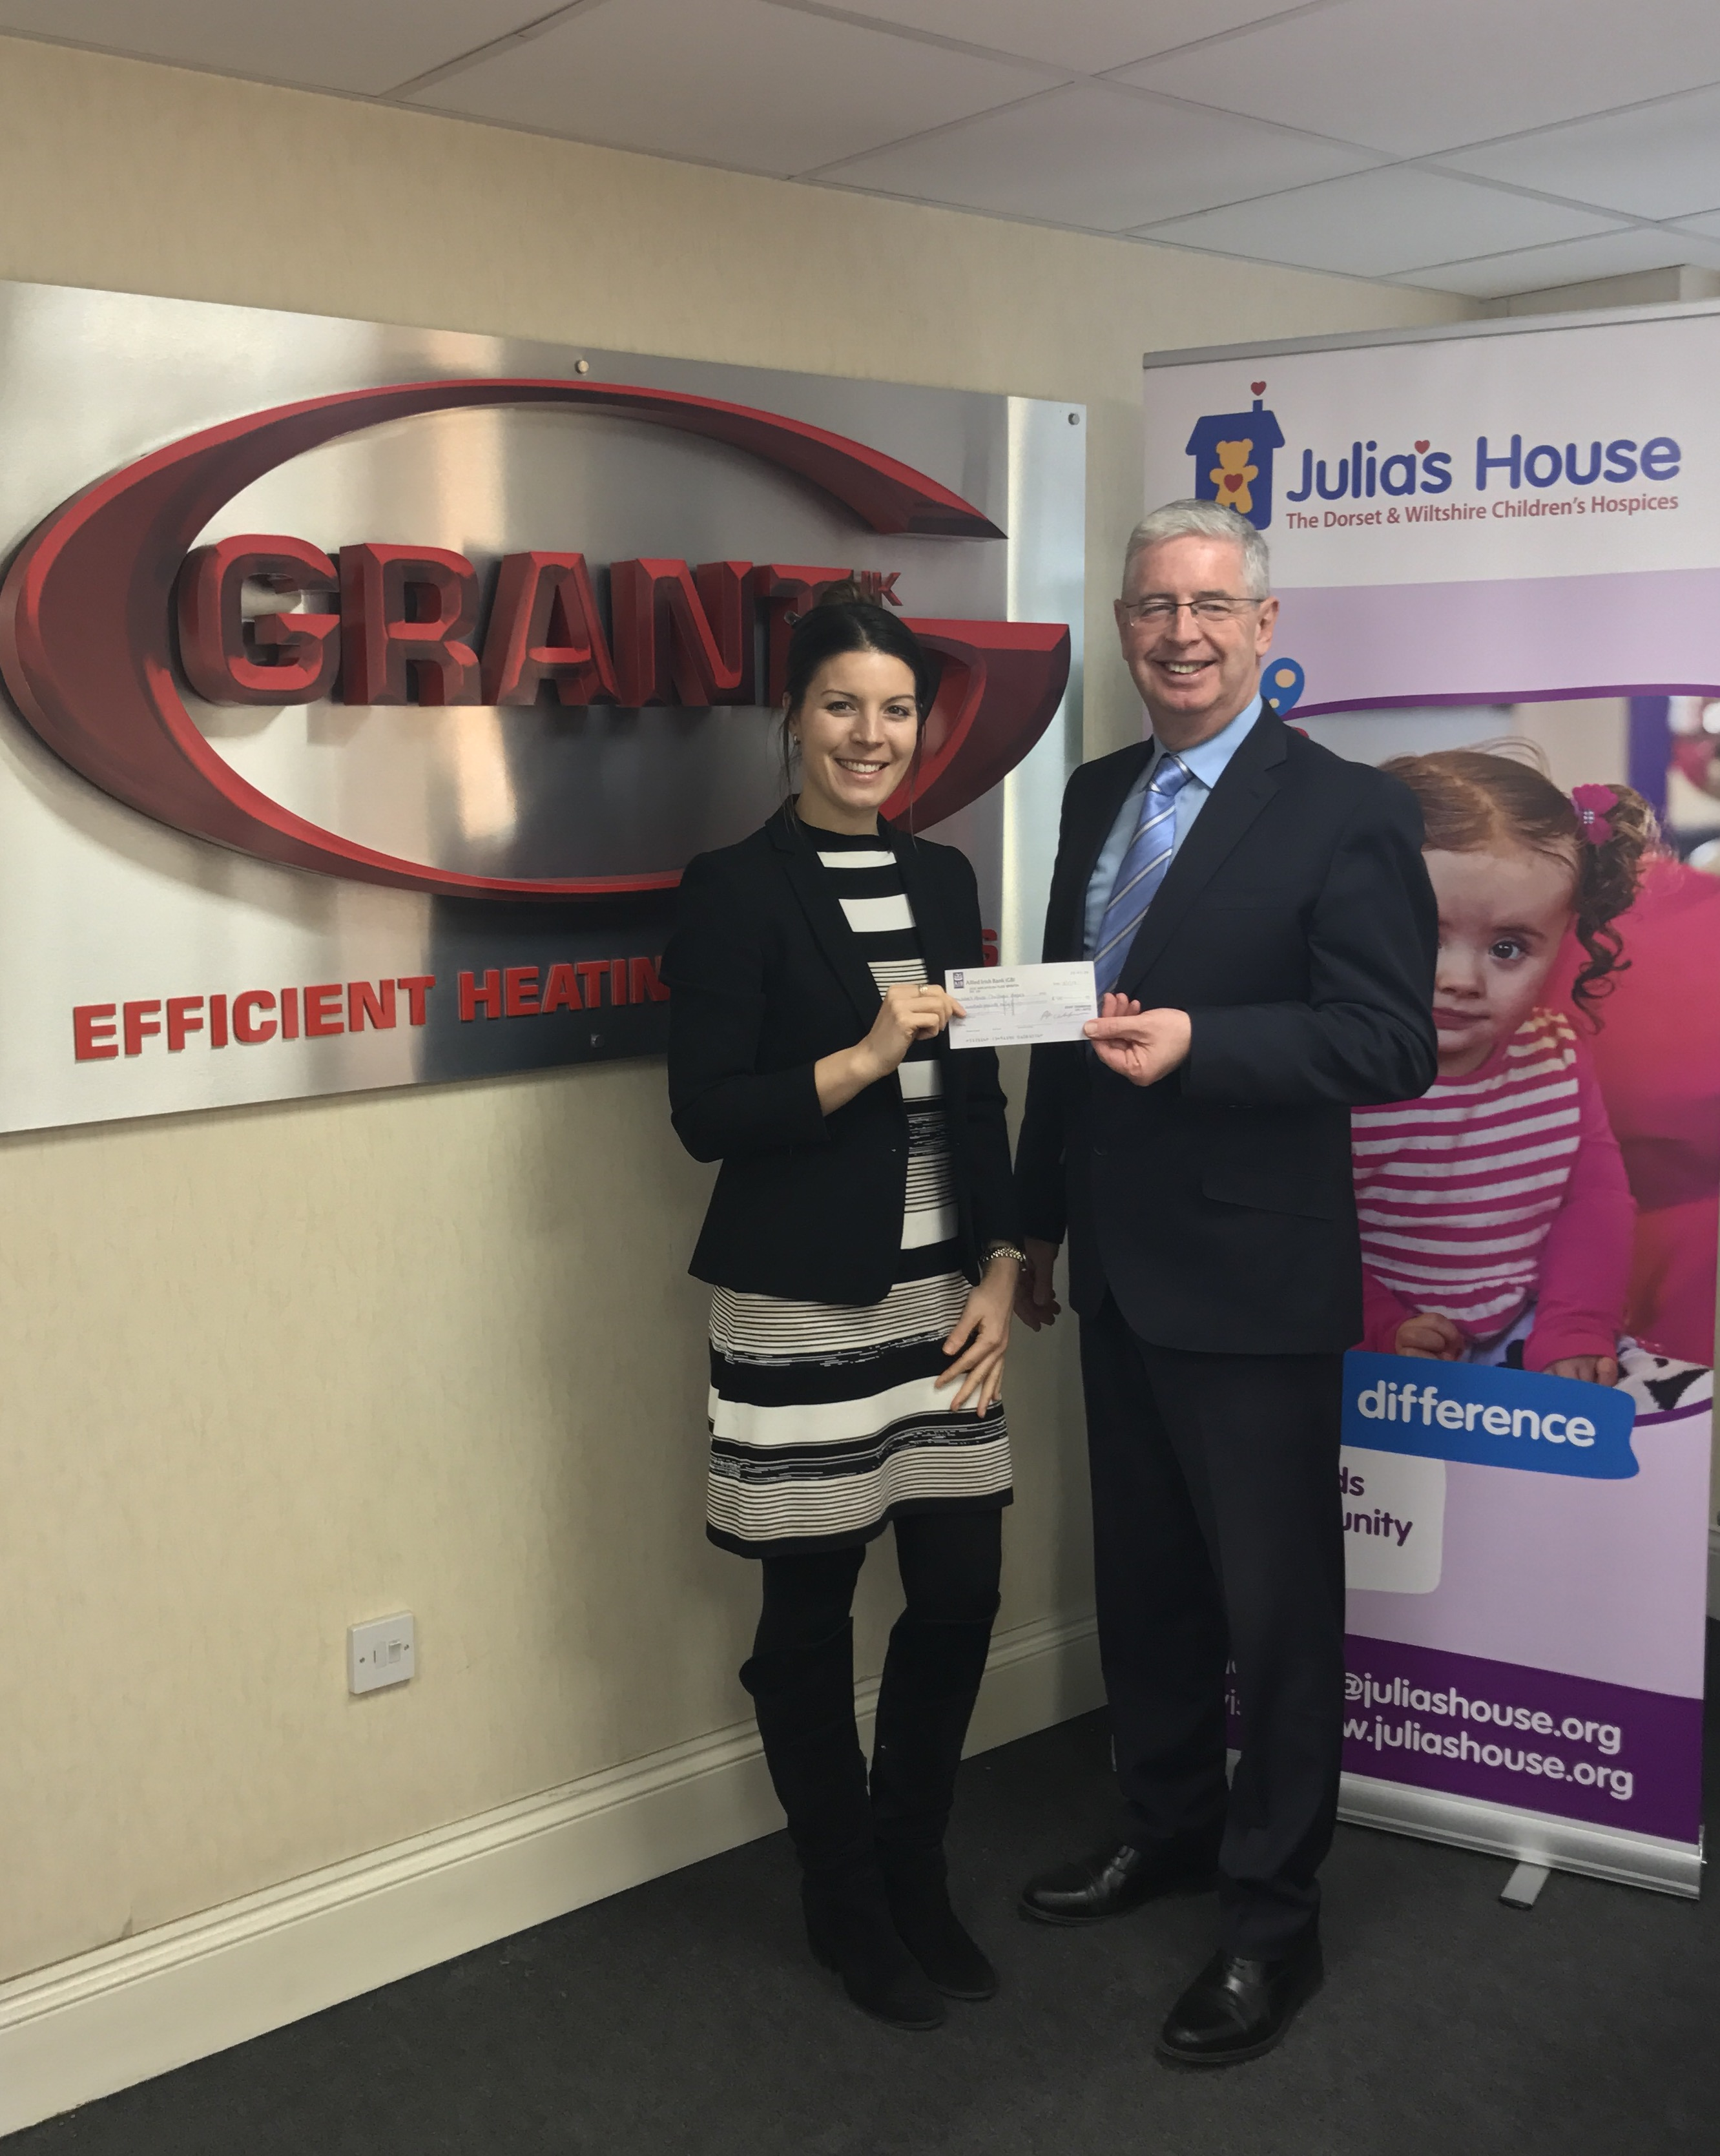 Grant UK raises £500 for local charity in December